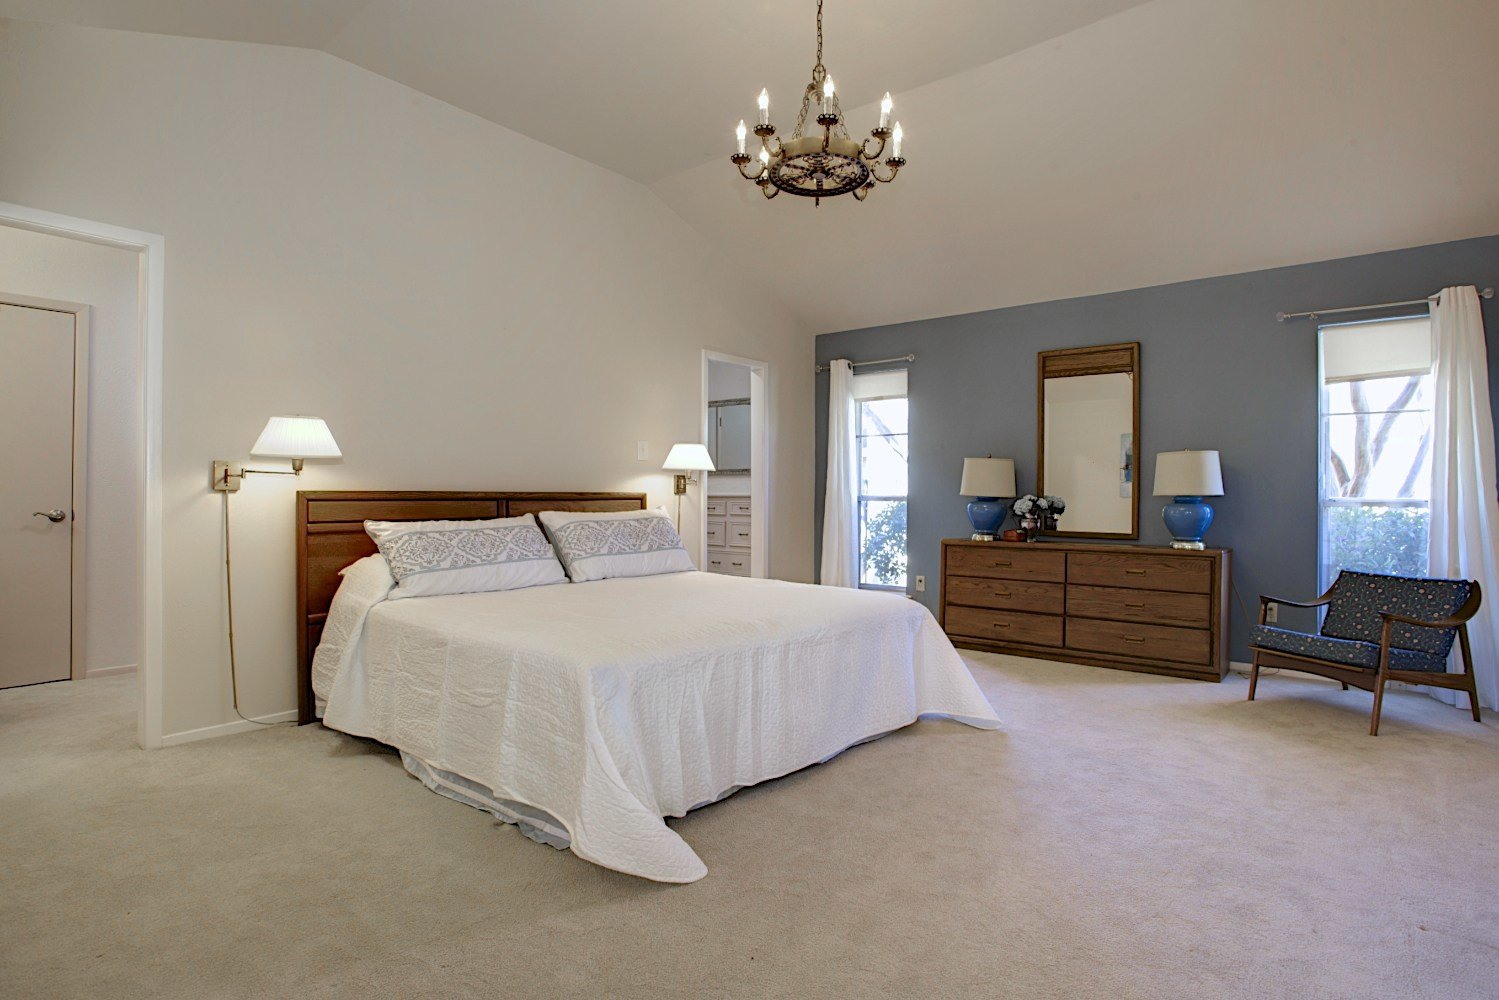 Best Bedroom Lighting Creative White Tumblr With Pops Of Color Bedrooms Master Small Modern Gray And With Pictures